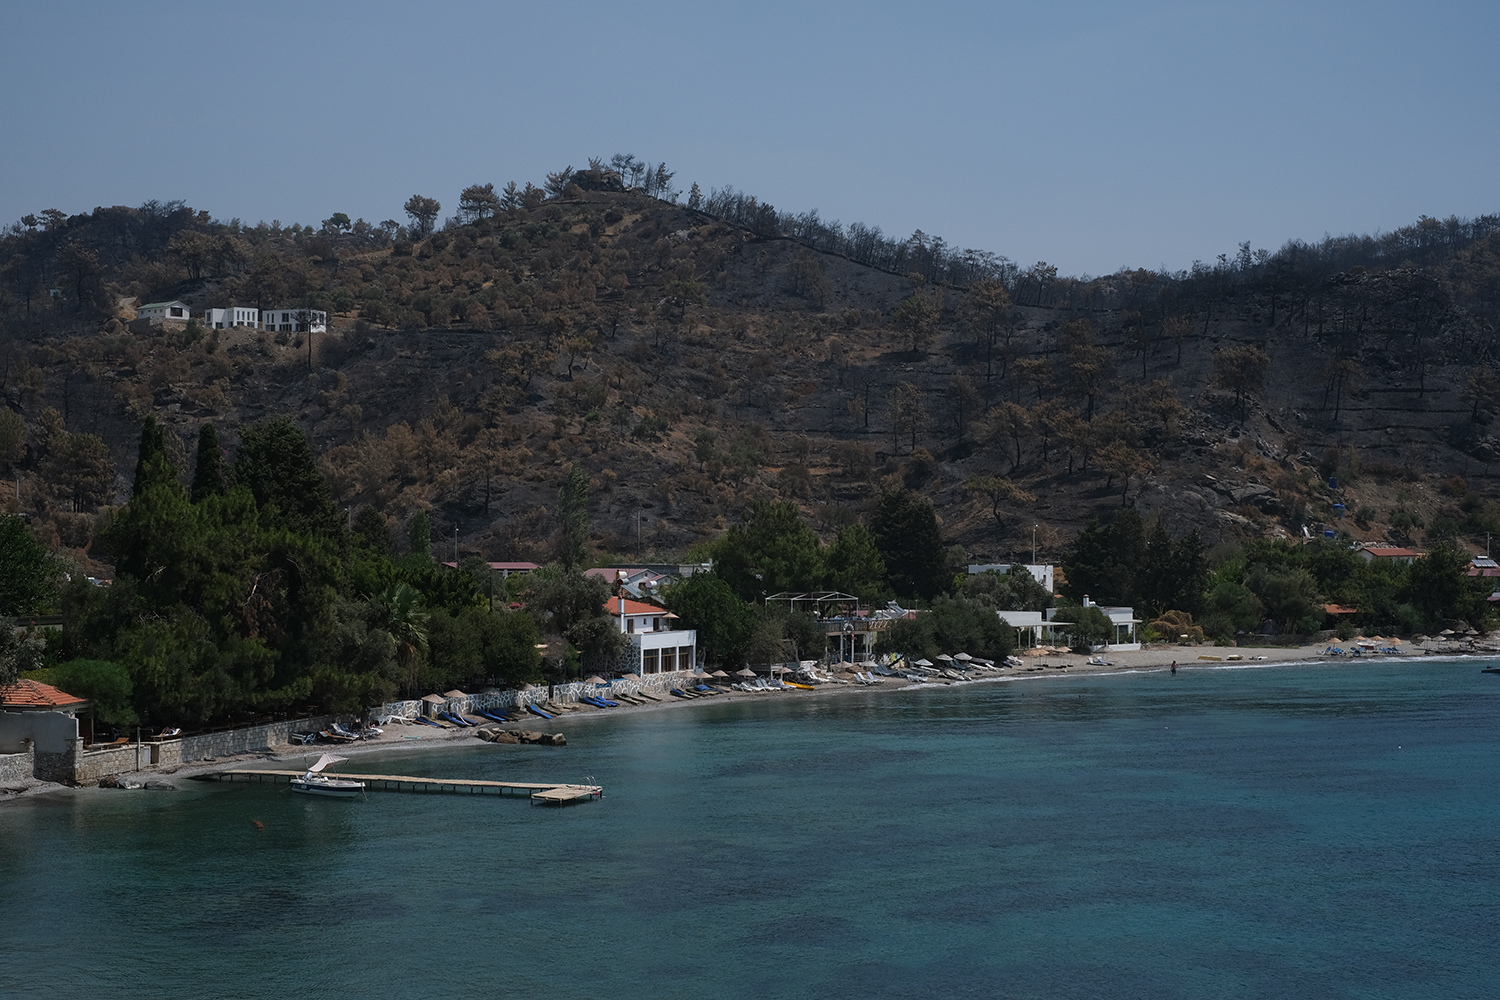 The hills behind behind Mazikoy, Mugla, are seen blackened by forest fires